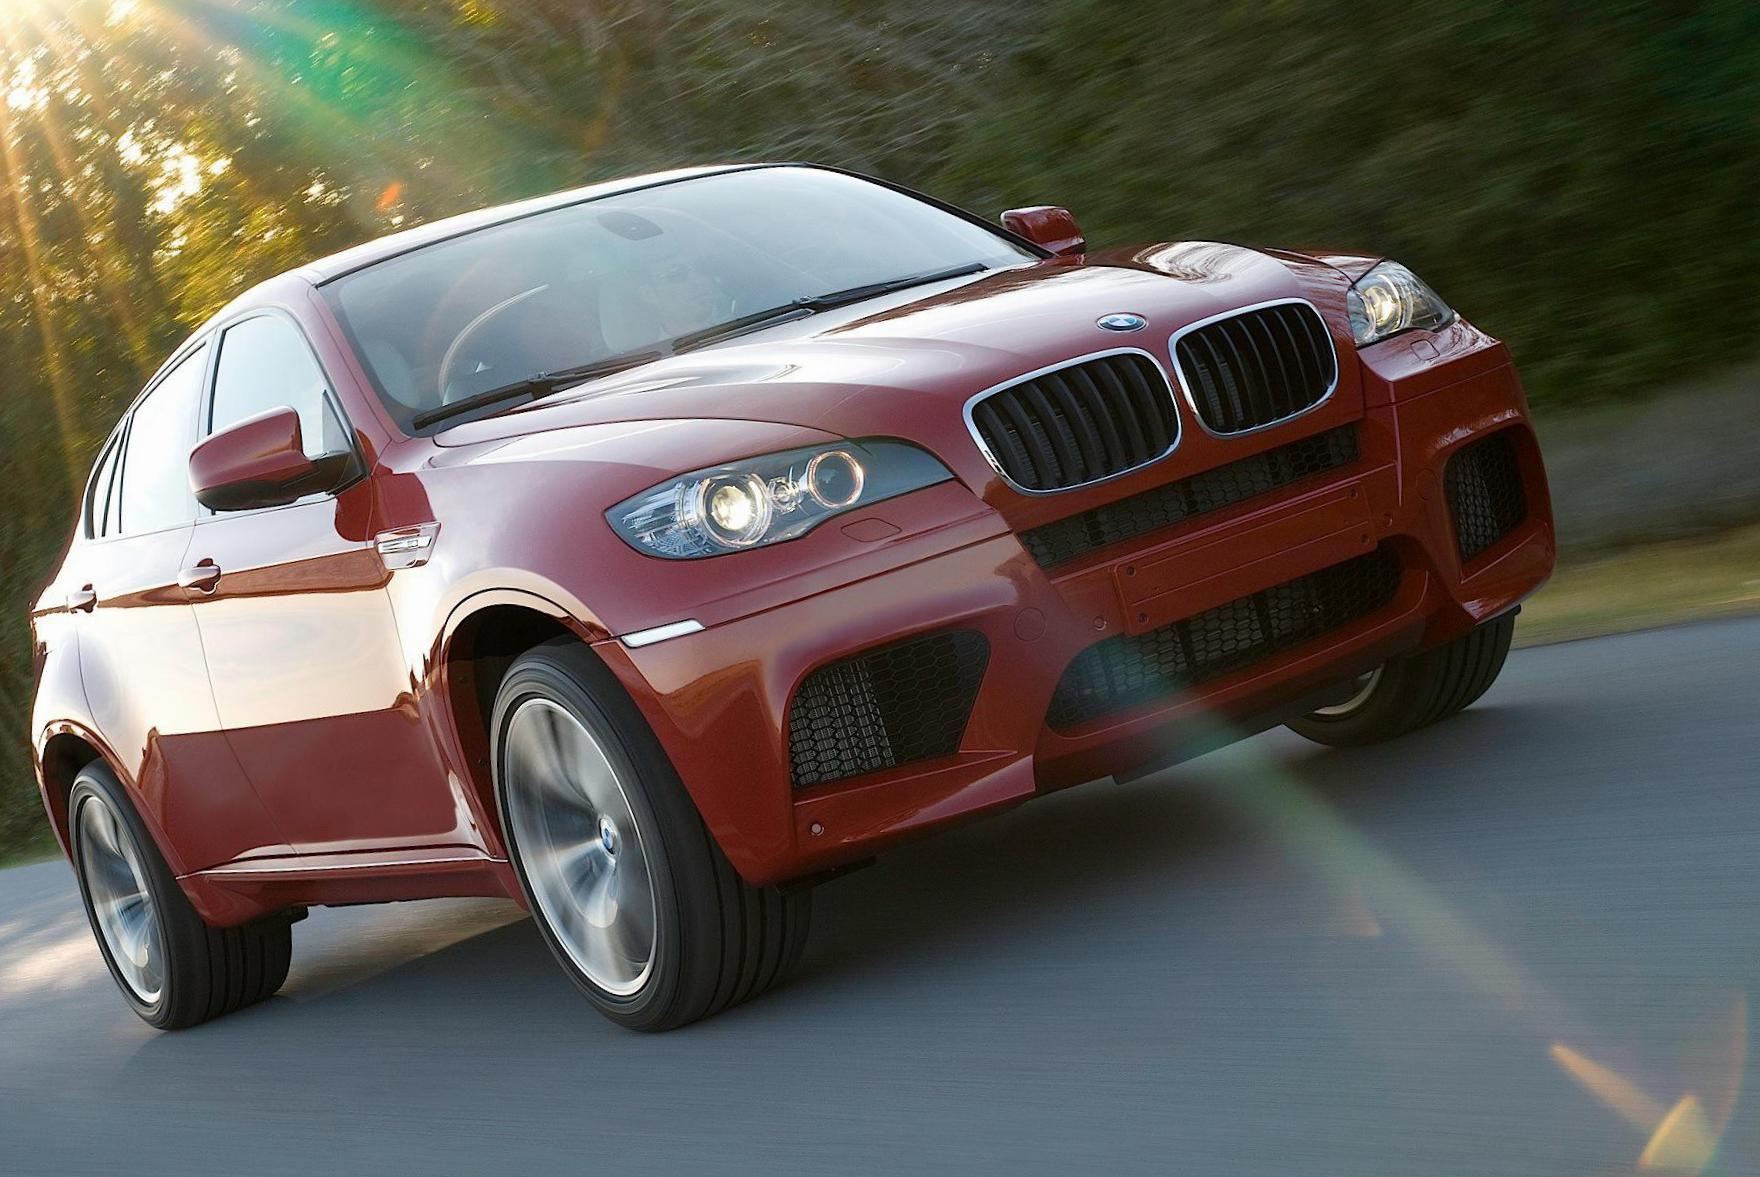 BMW X6 M (E71) how mach 2011